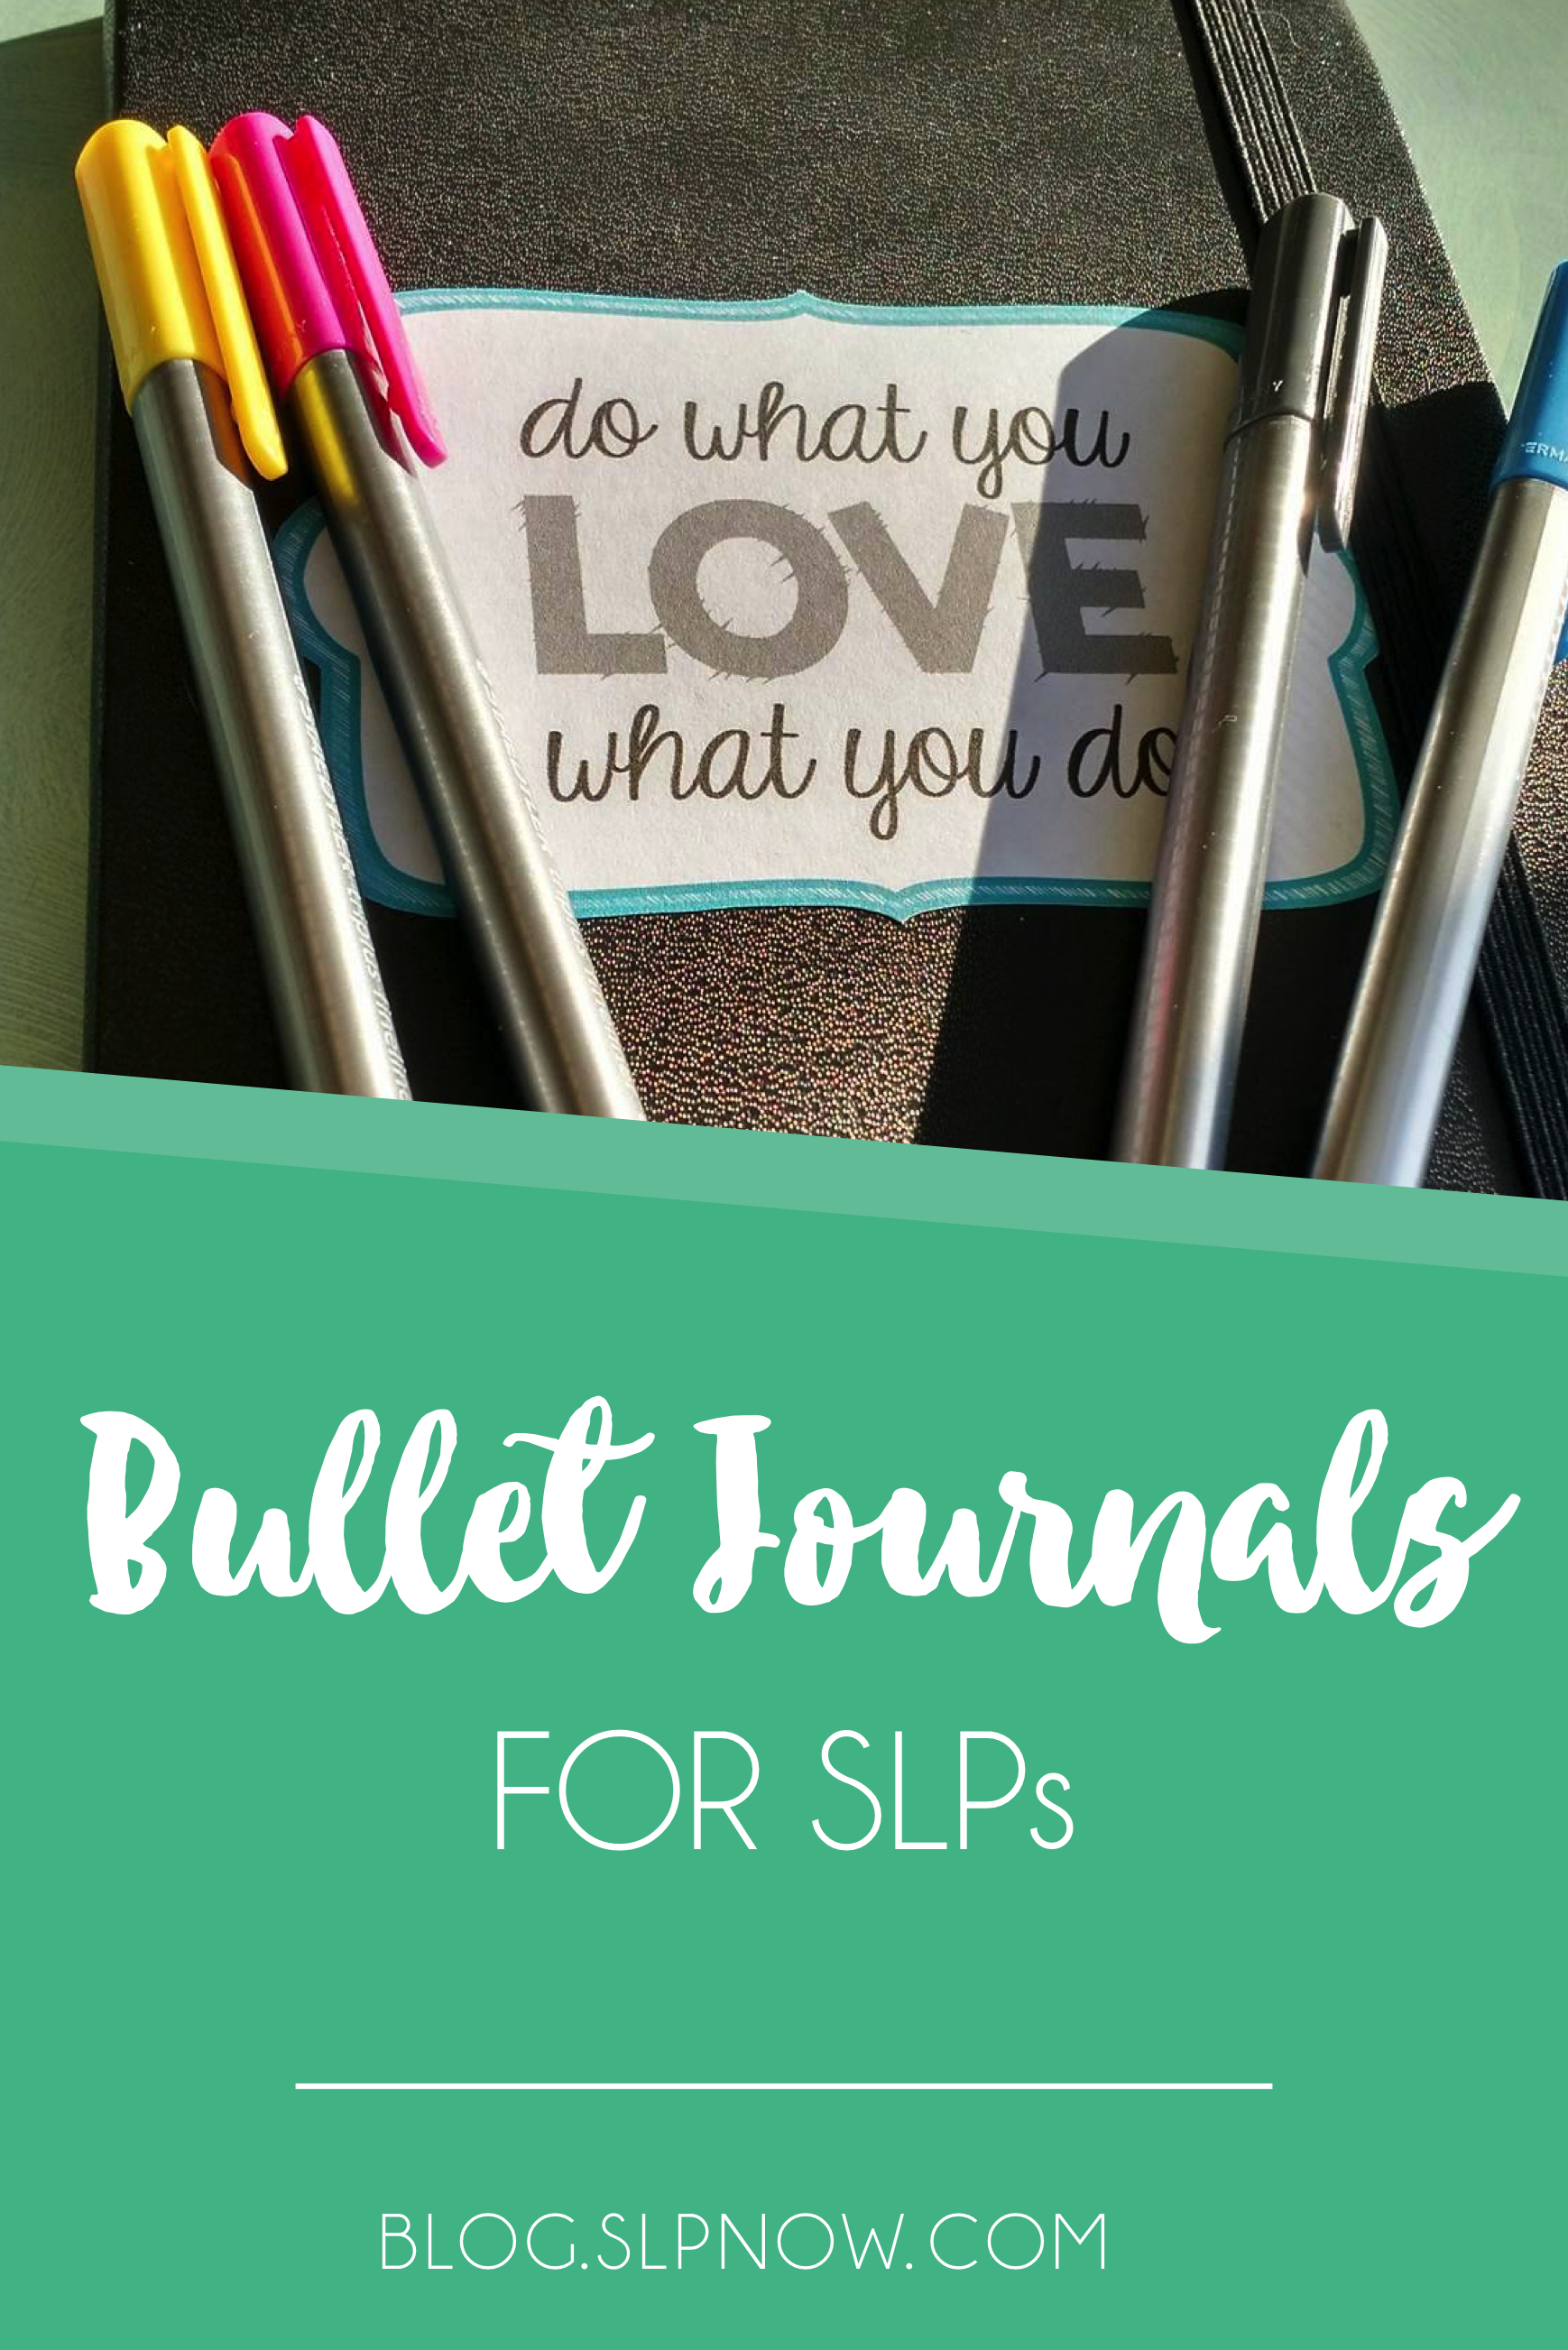 Have you jumped on the bullet journal bandwagon? I have, and I can say that I've been really happy with this system so far! I love all of the ways that I can personalize it to my needs, which is why I think a bullet journal is a great choice for other SLPs, too. Read my thoughts in this post, and check out a scope on it!